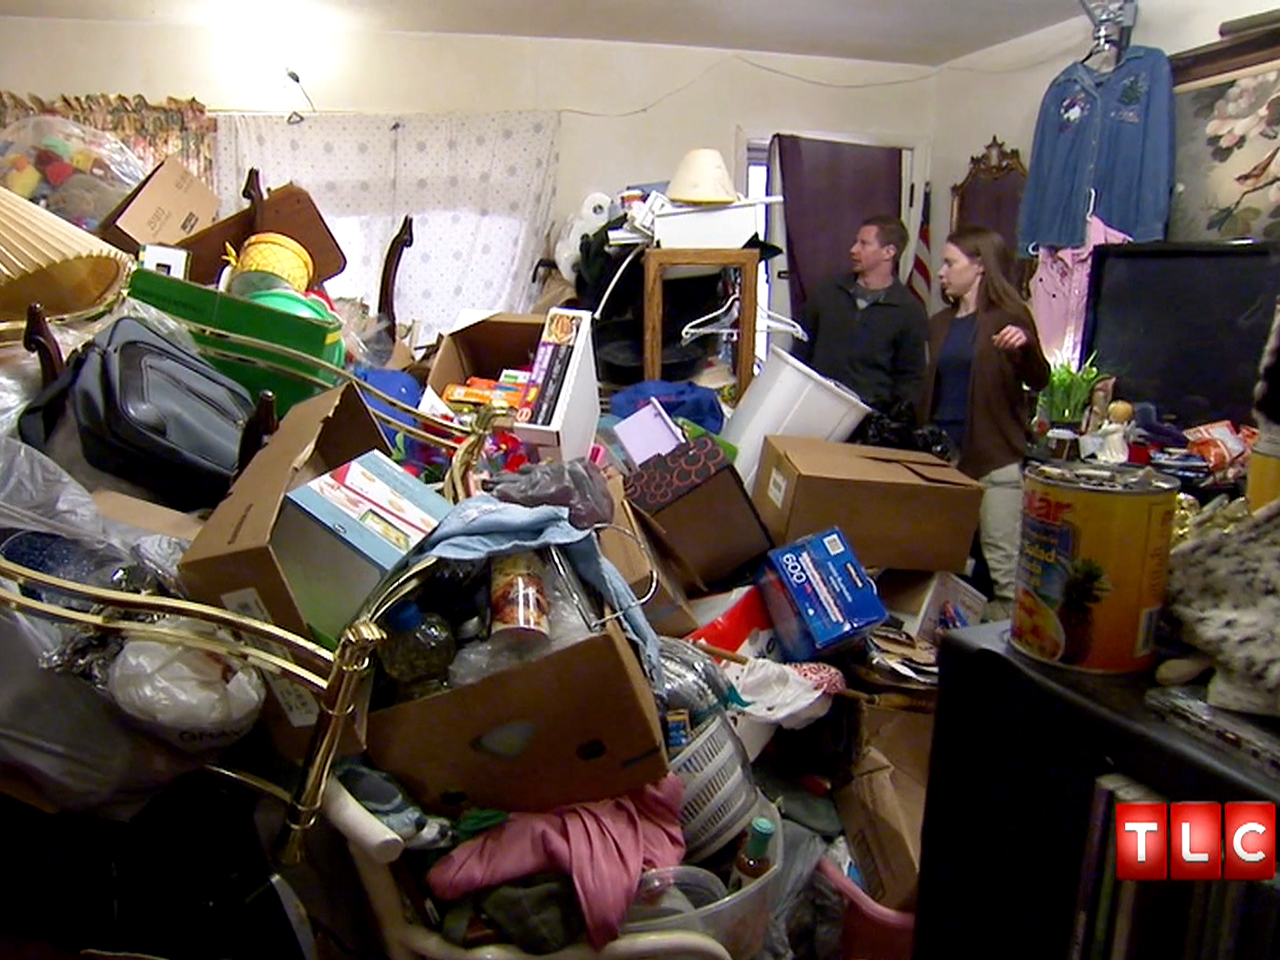 how to clean mild hoarder